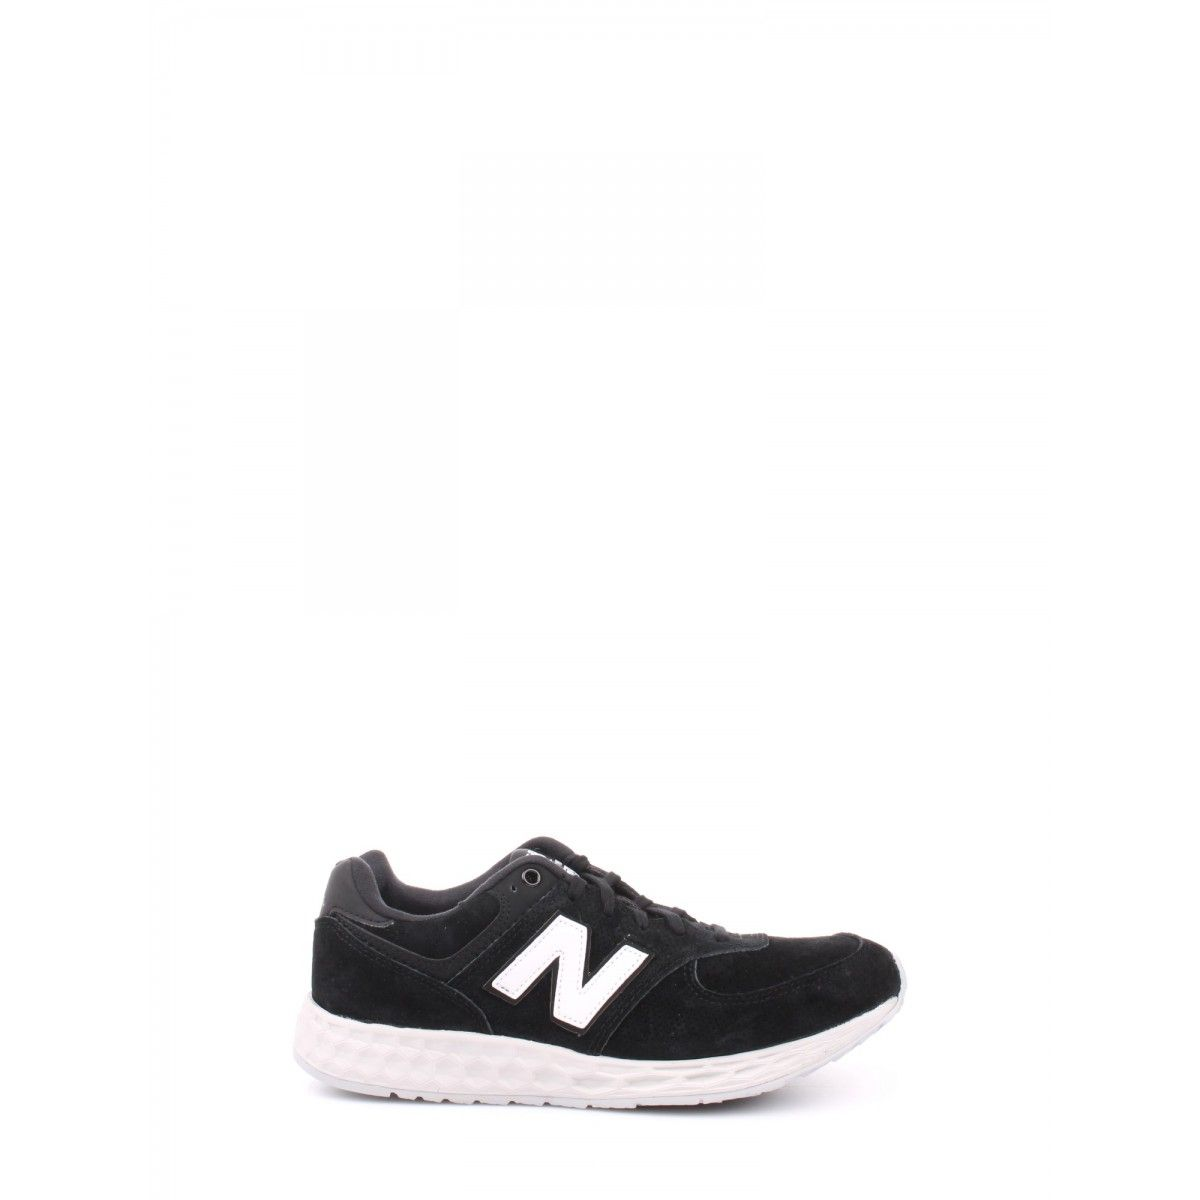 New balance - Leather/synthetic/mesh grey/black MFL574FC